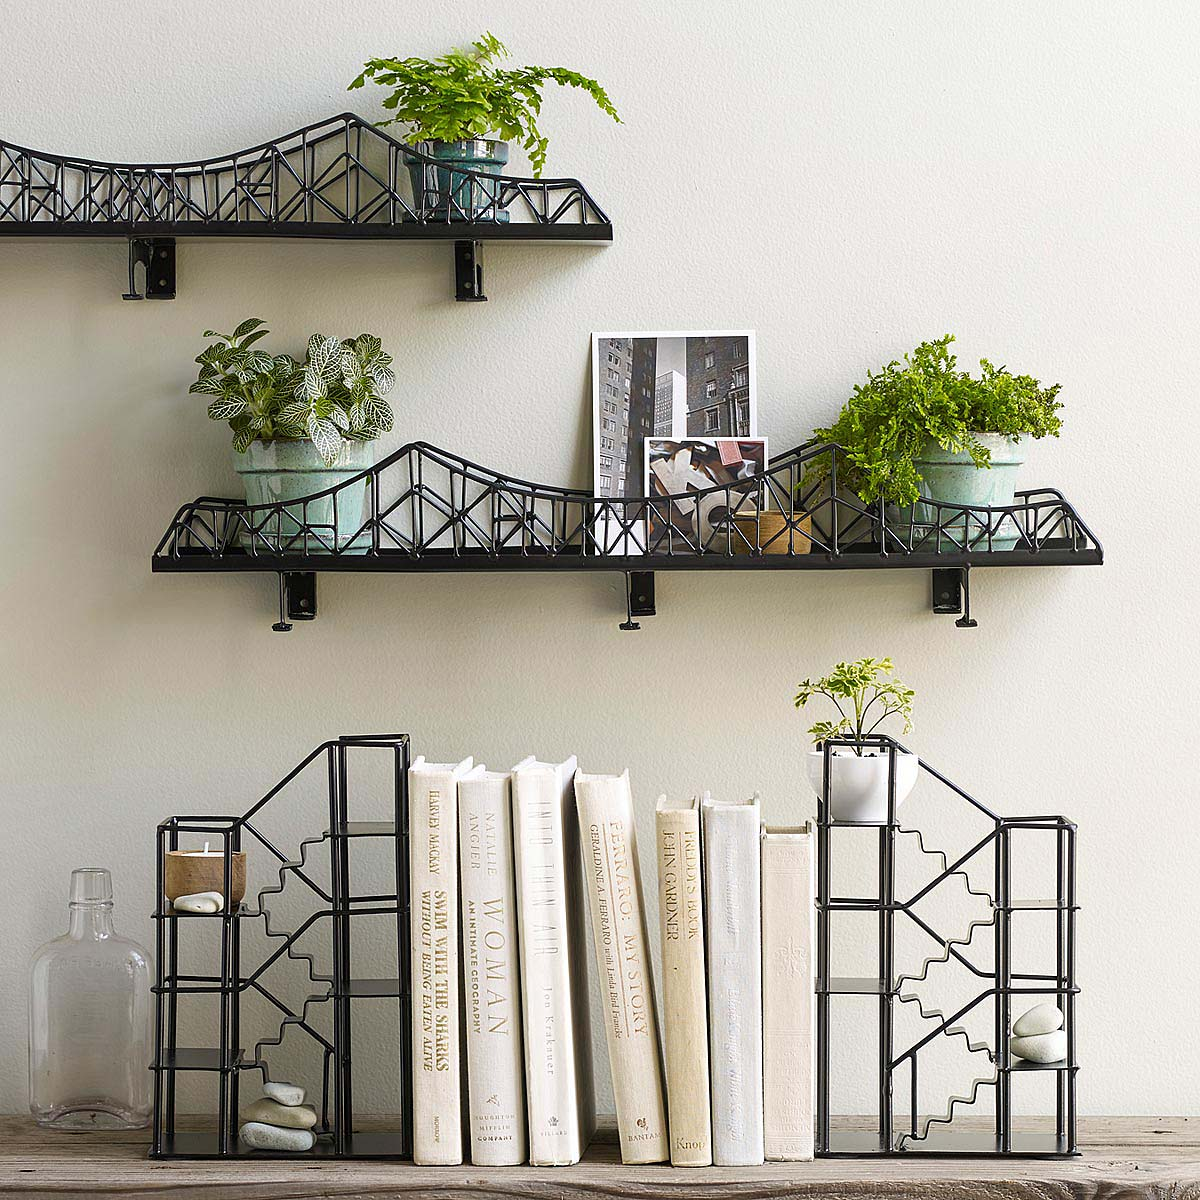 Fire Escape Shelf | utilitarian designs for your home | UncommonGoods